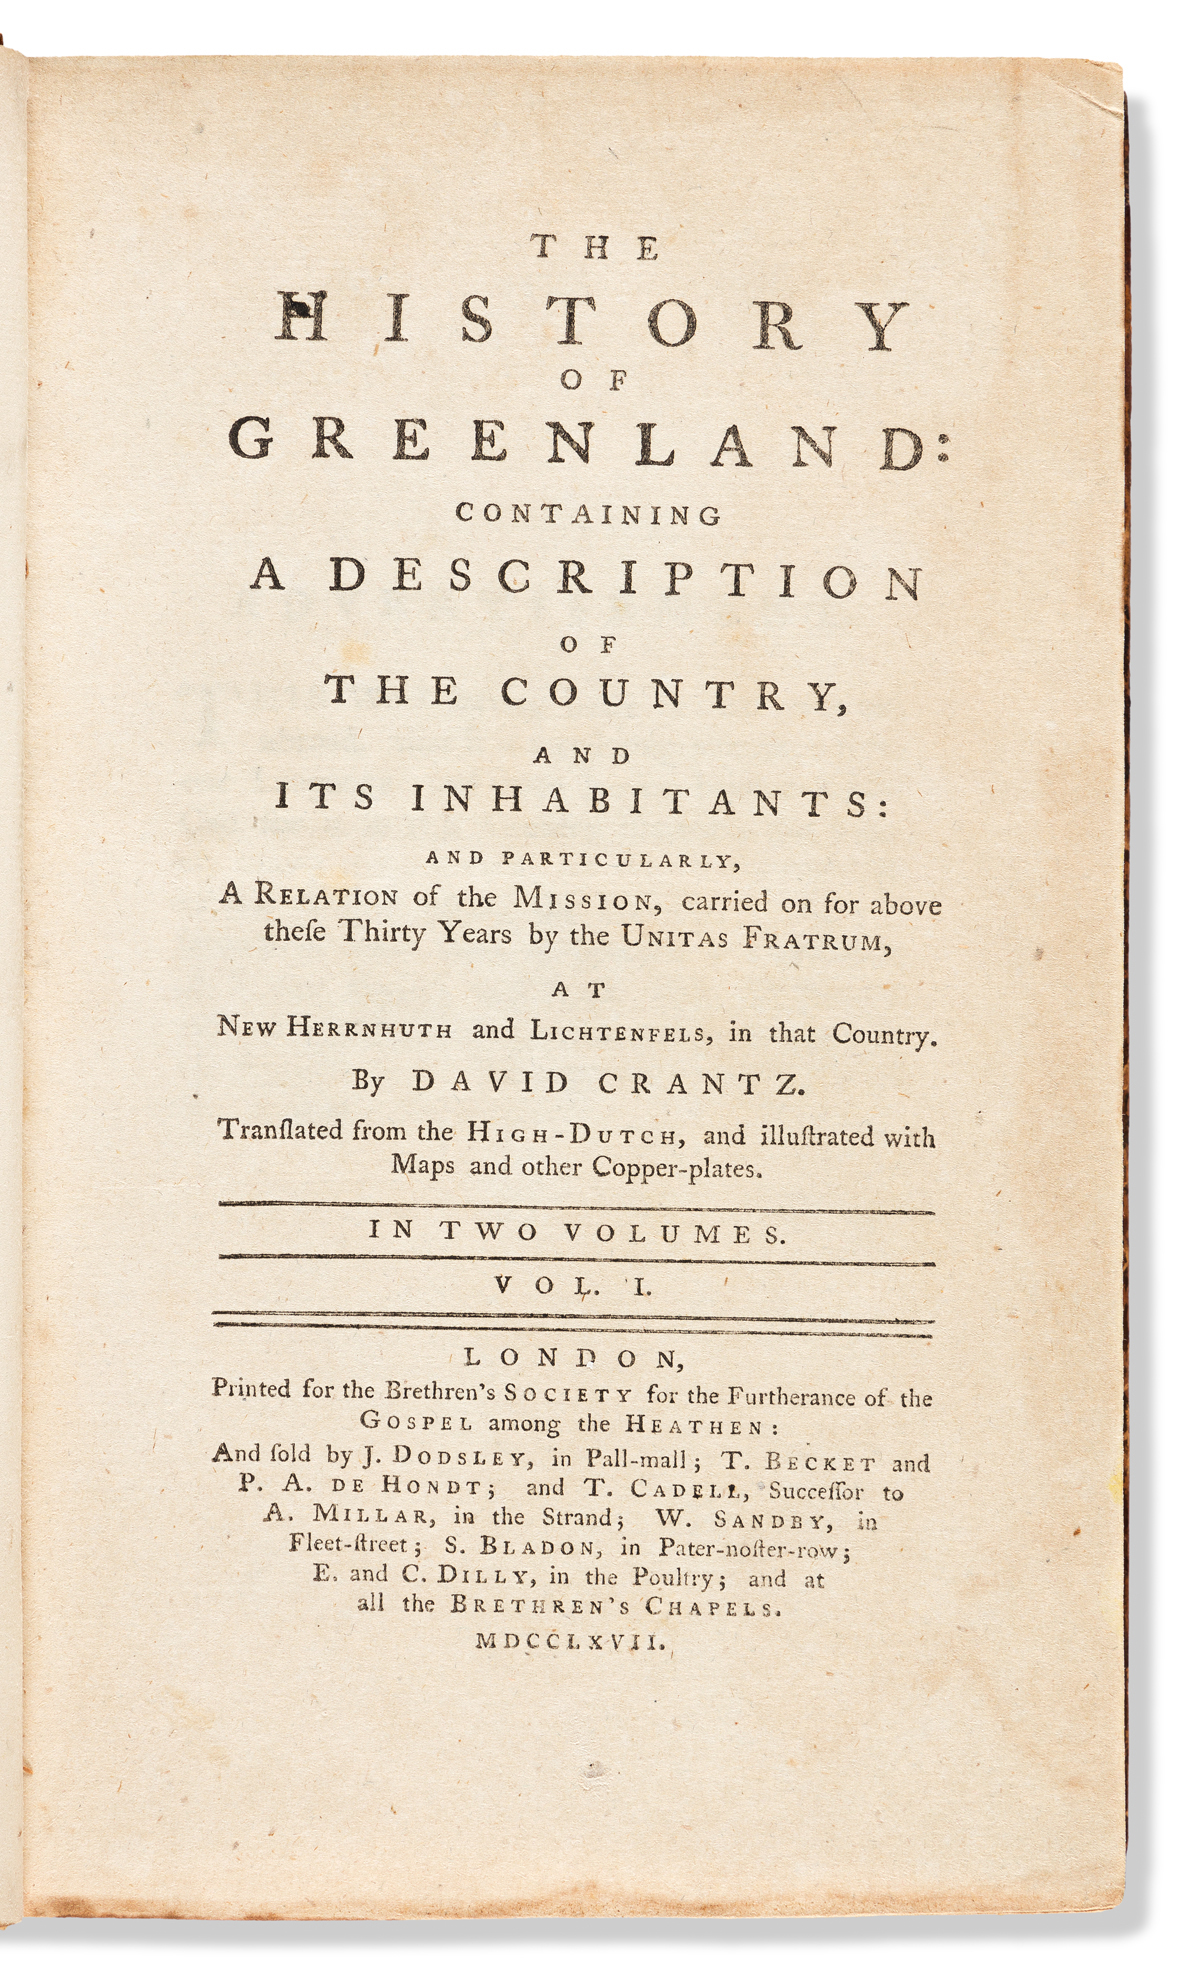 Cranz, David (1723-1777) The History of Greenland: Containing a Description of The Country, and Its Inhabitants.